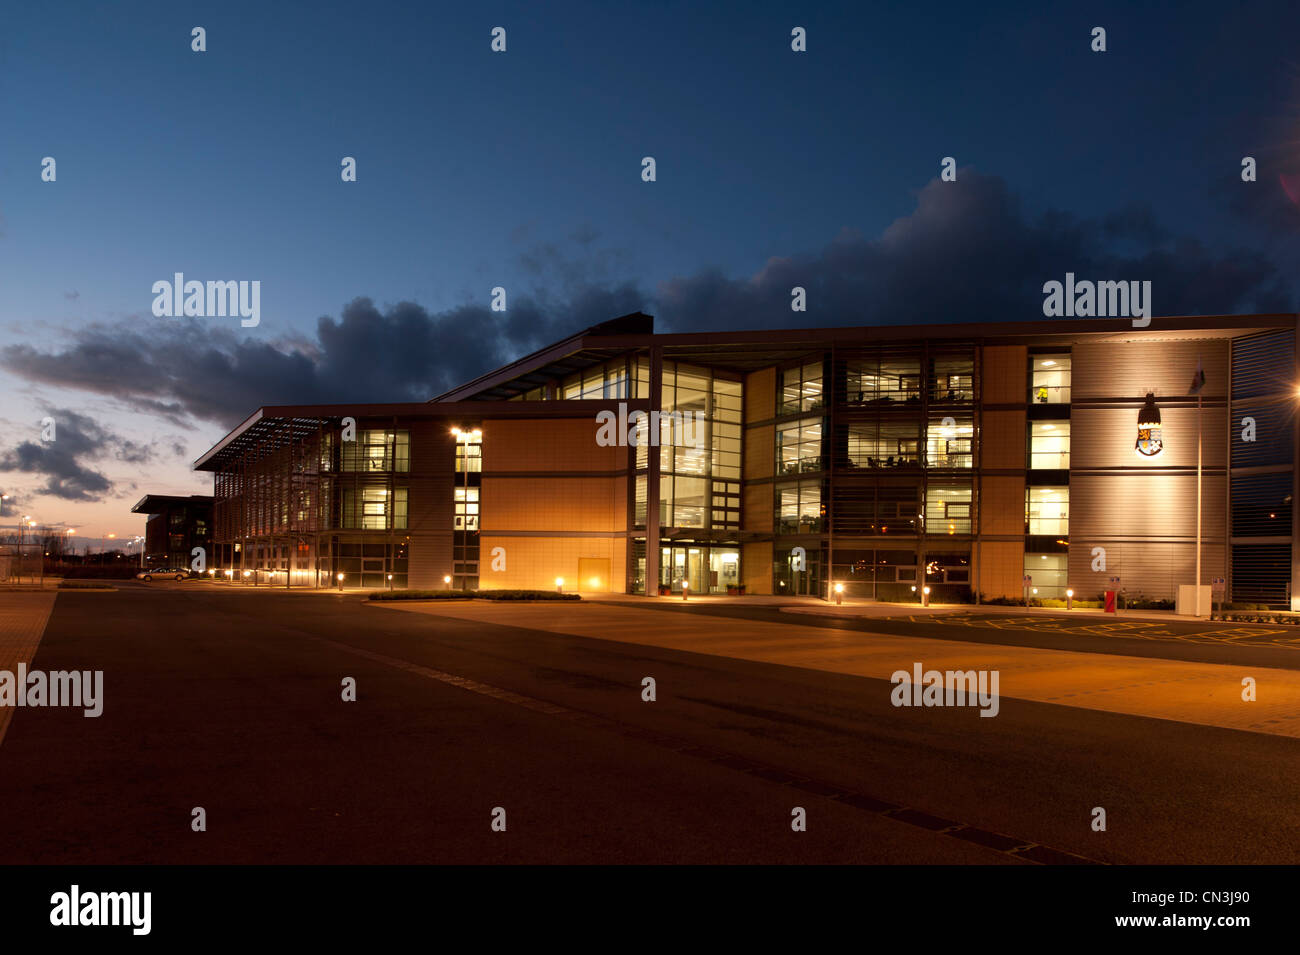 Ceredigion County Council local government offices, exterior, night, Aberystwyth Wales UK - Stock Image